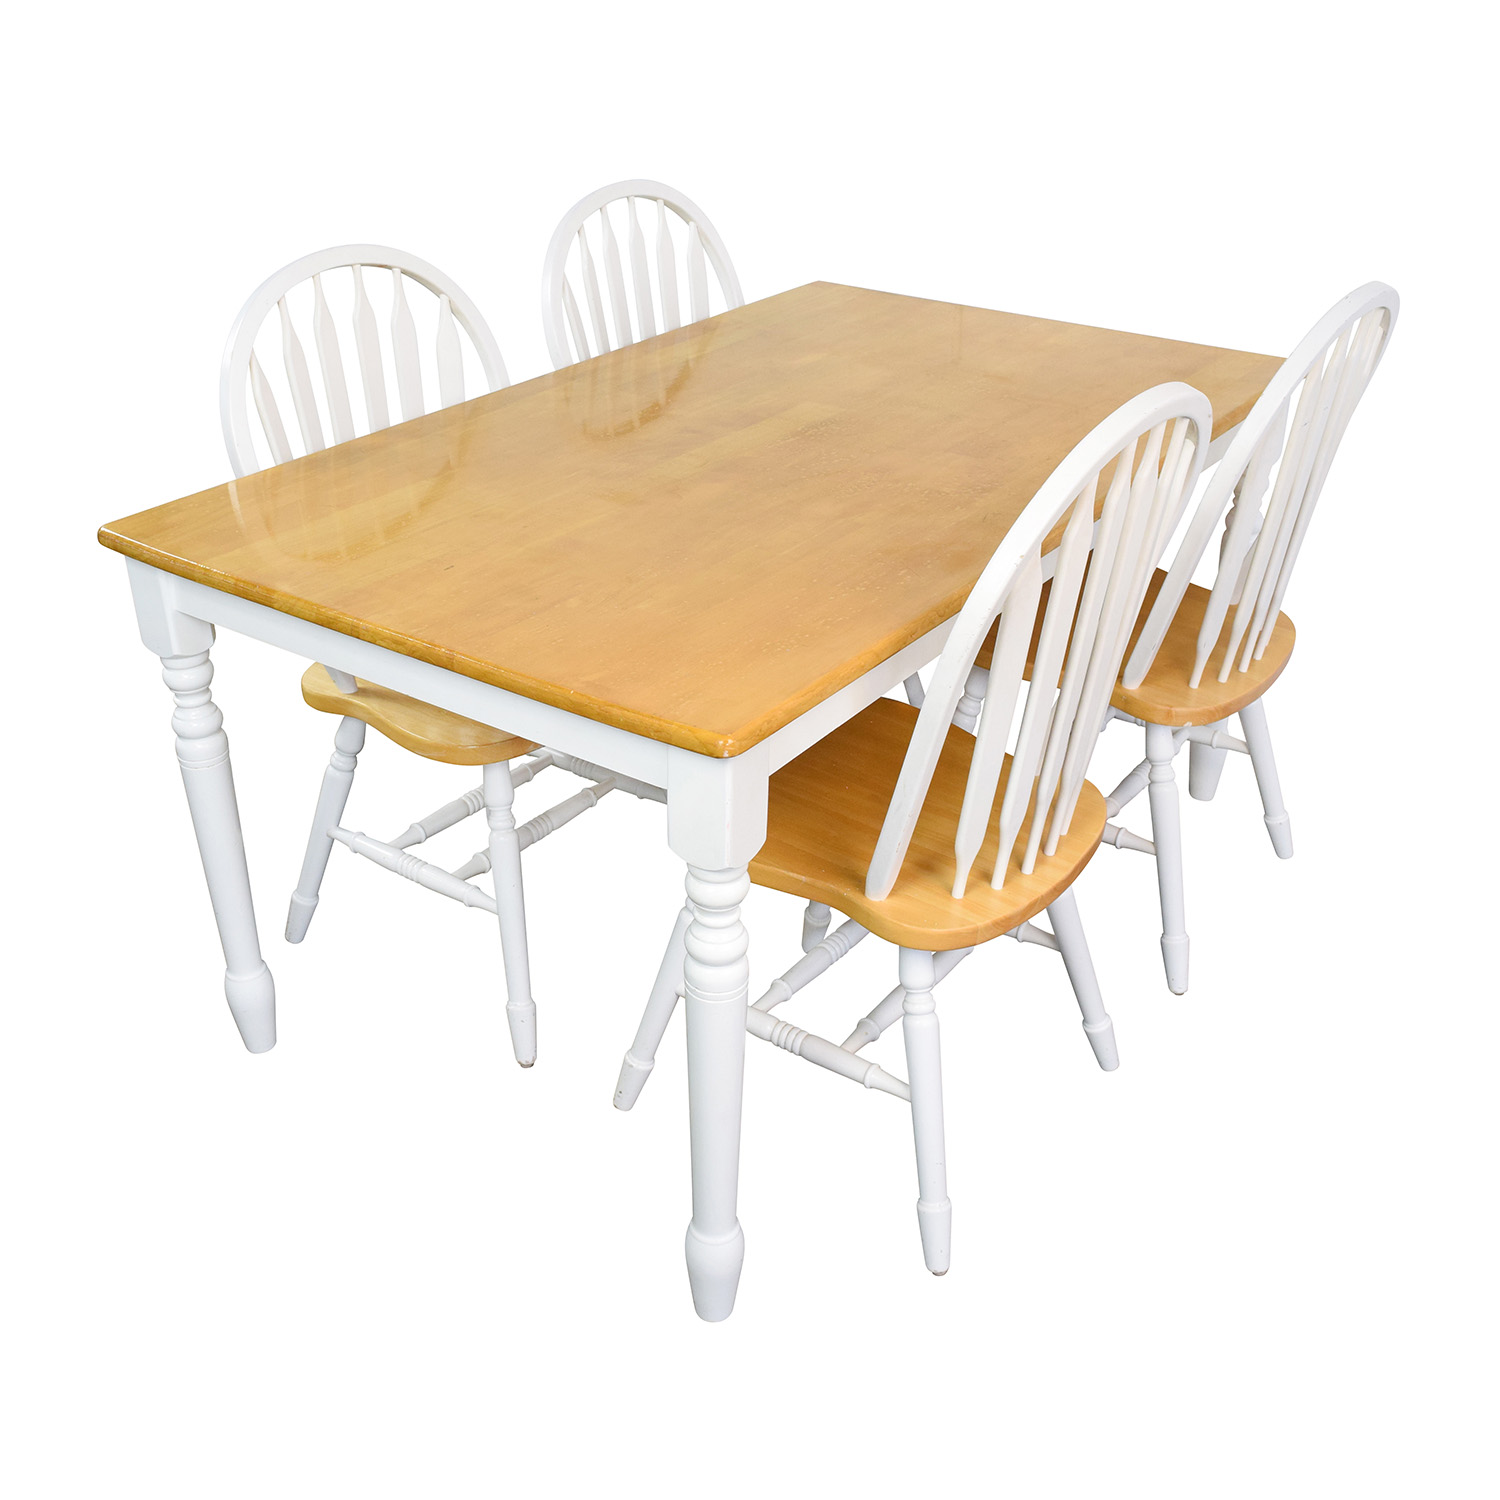 White Wooden Dining Chairs 63 Off White And Natural Wood Color Dining Set Tables